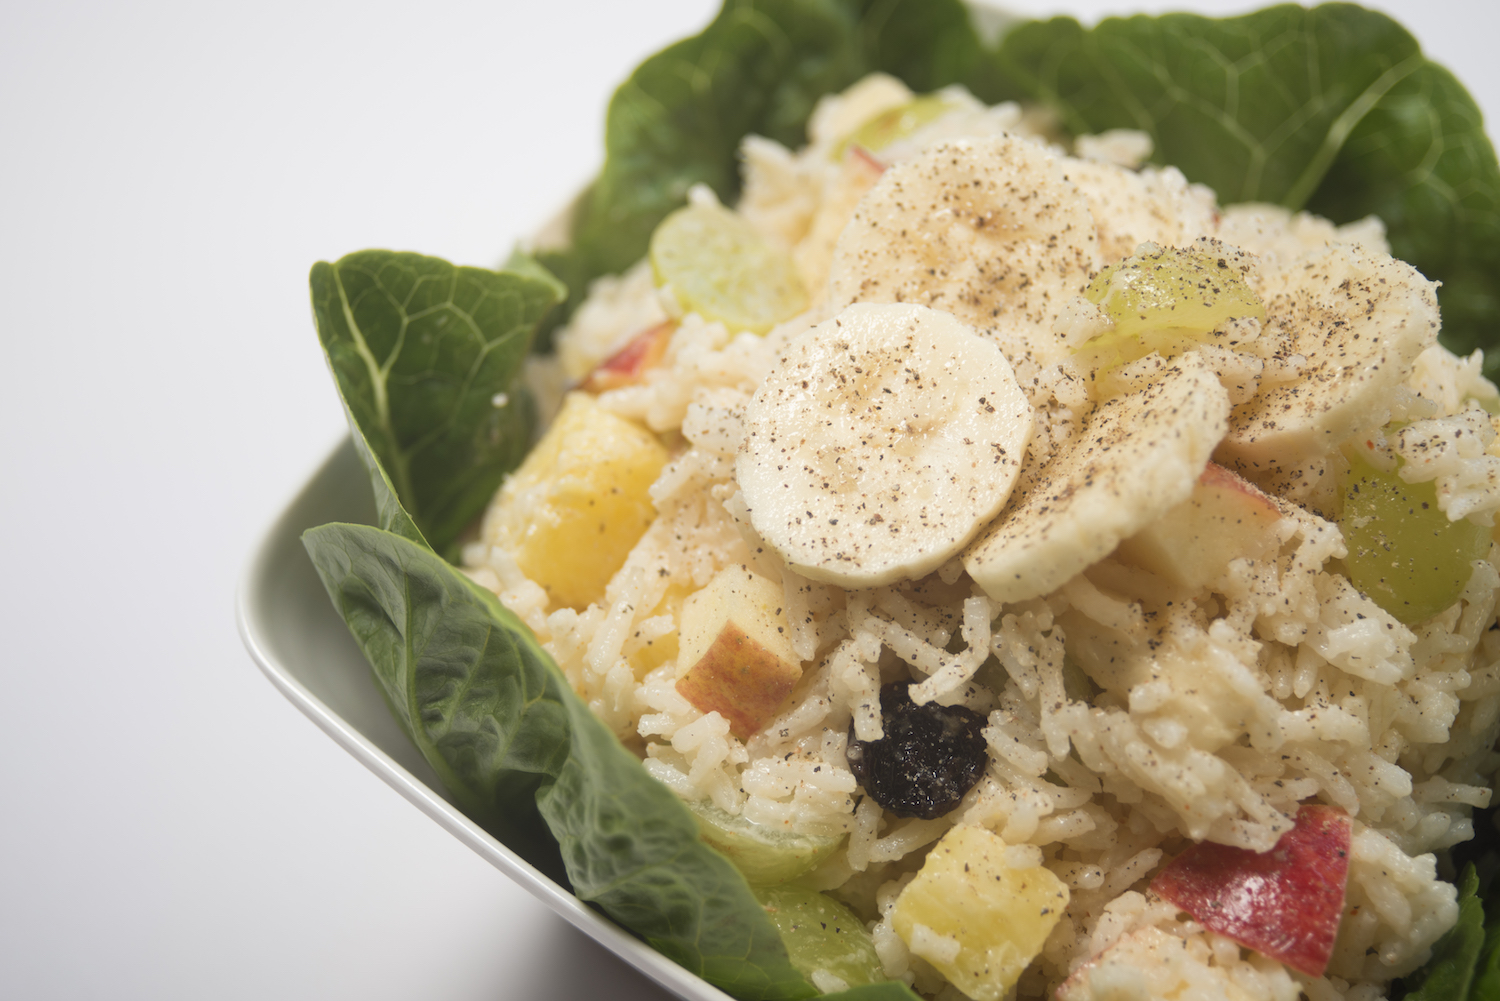 creole-style banana salad with pineapple and raisins -